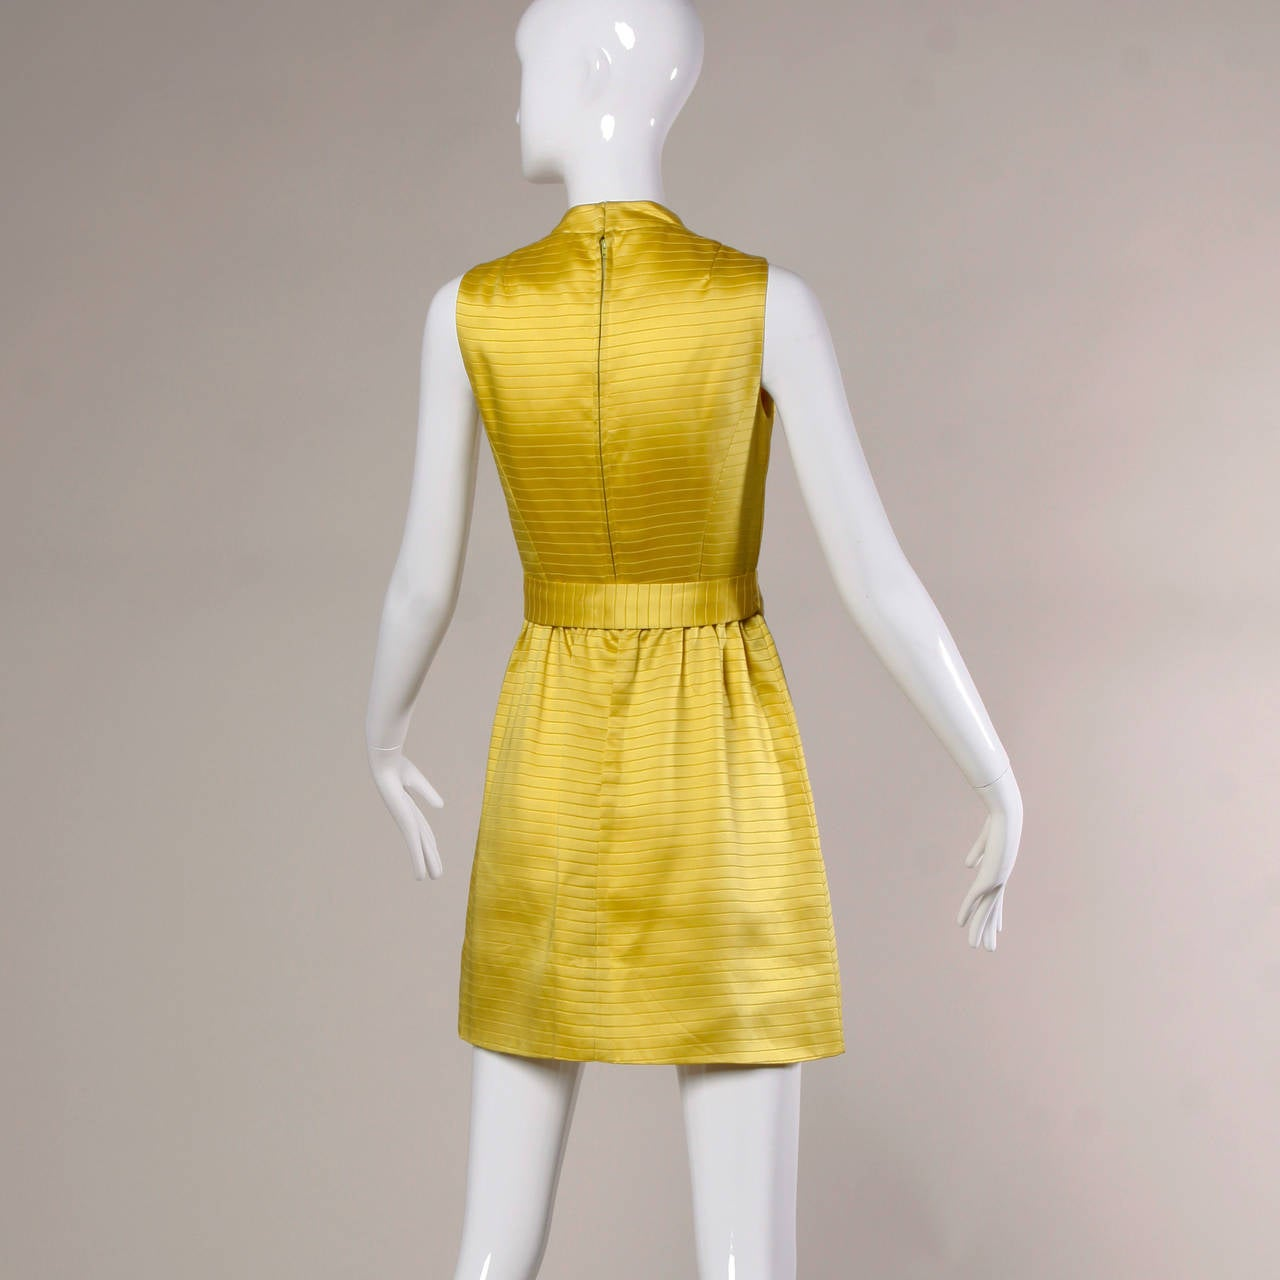 Darling 1960s Vintage Yellow Mini Dress with Rhinestone Buttons 5